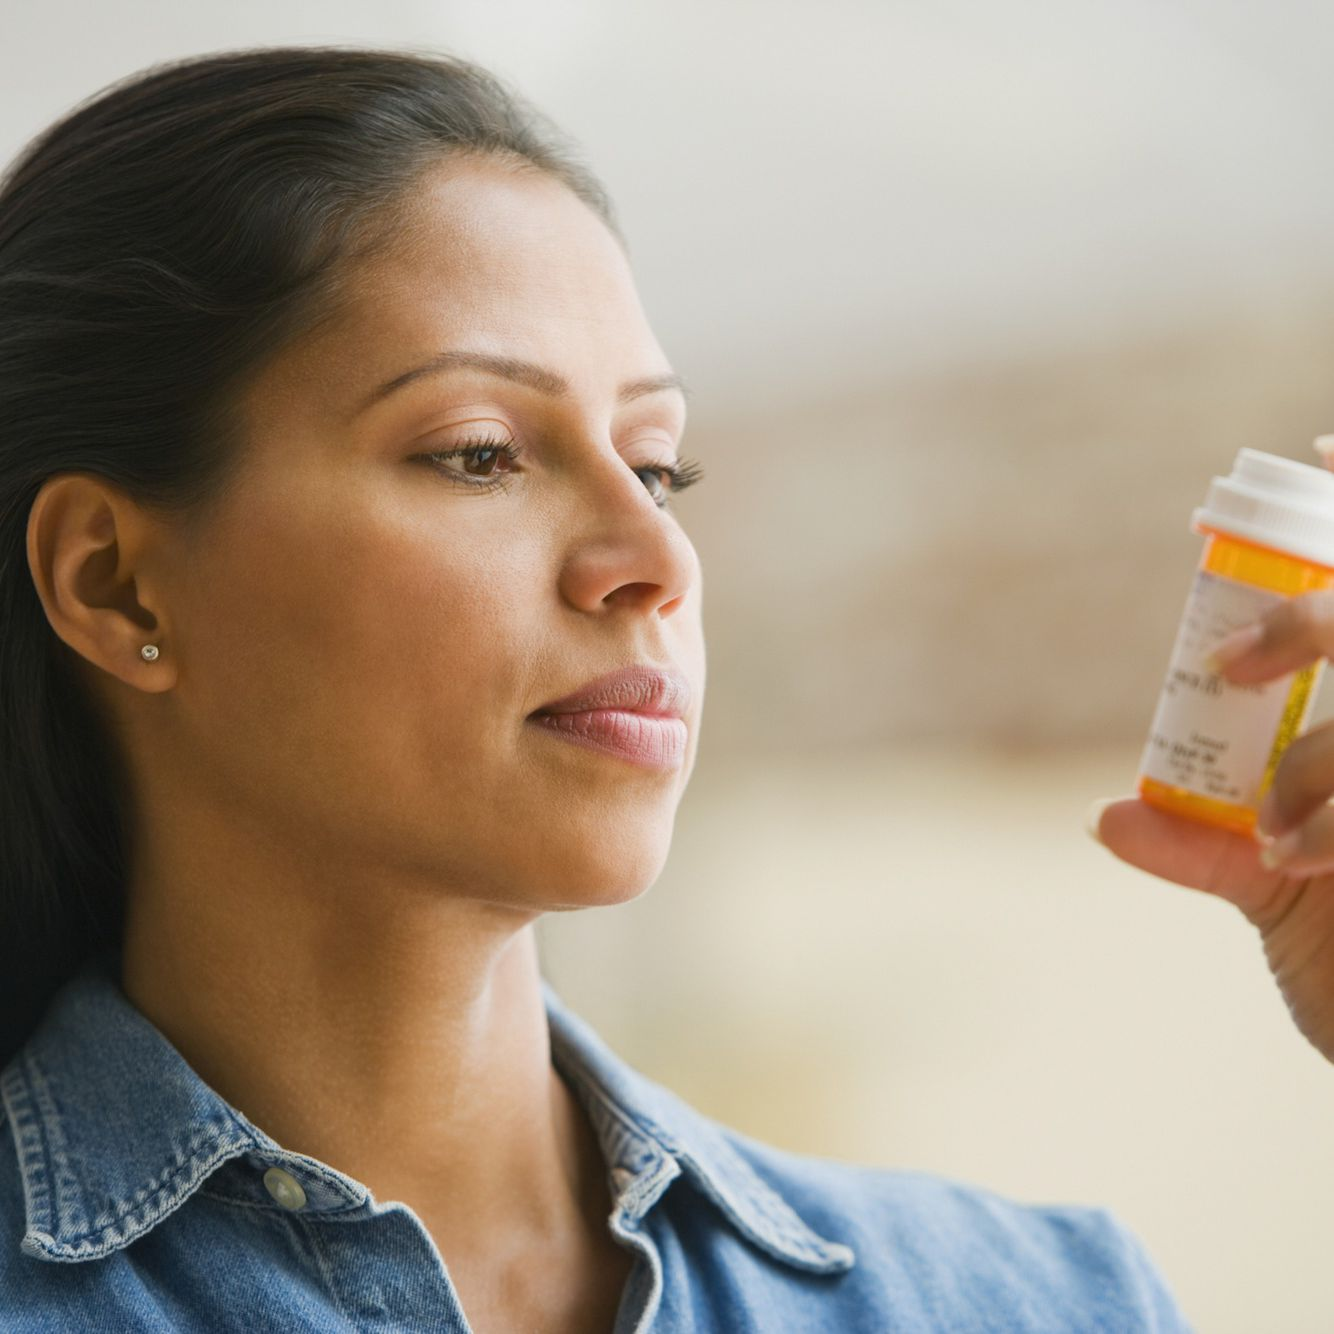 Potential Side Effects and Risks of Tegretol